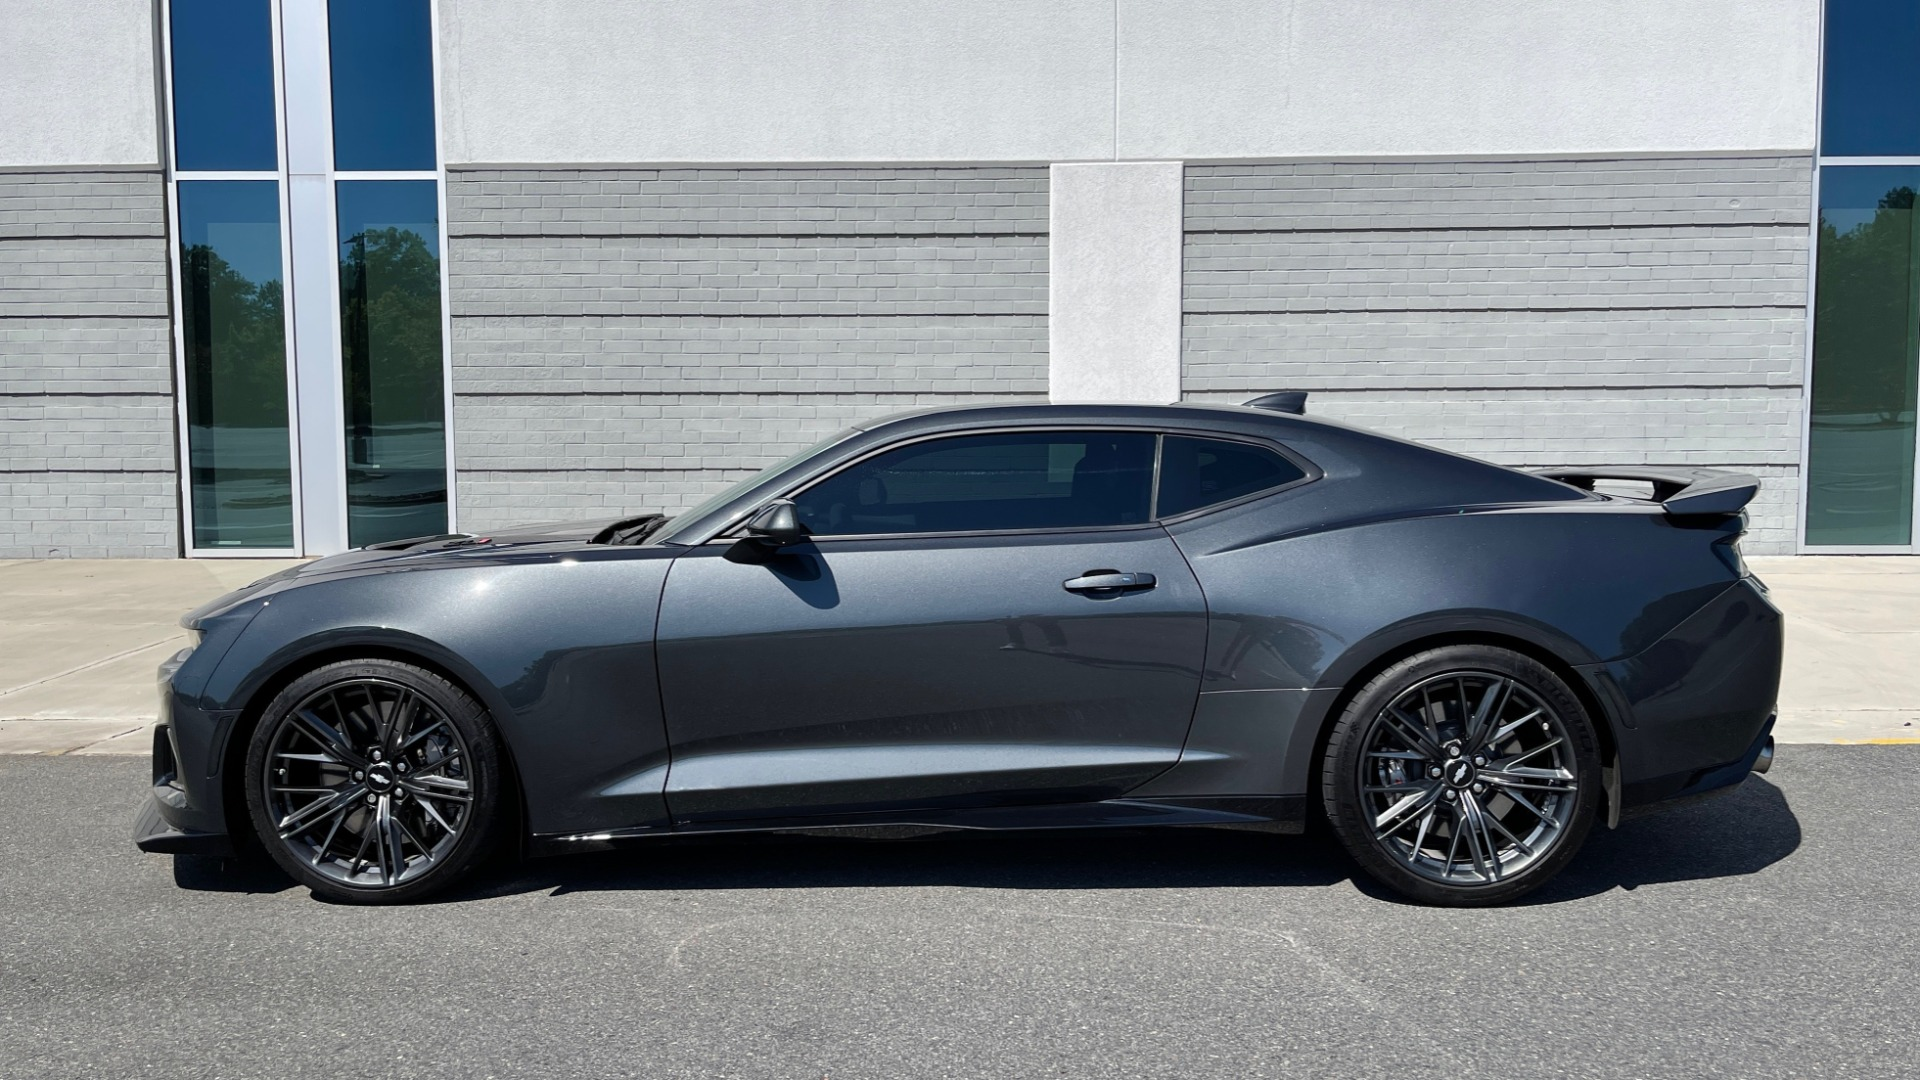 Used 2018 Chevrolet CAMARO ZL1 SUPERCHARGED COUPE 850HP / 10-SPD AUTO / NAV / BOSE / REARVIEW for sale $59,995 at Formula Imports in Charlotte NC 28227 5